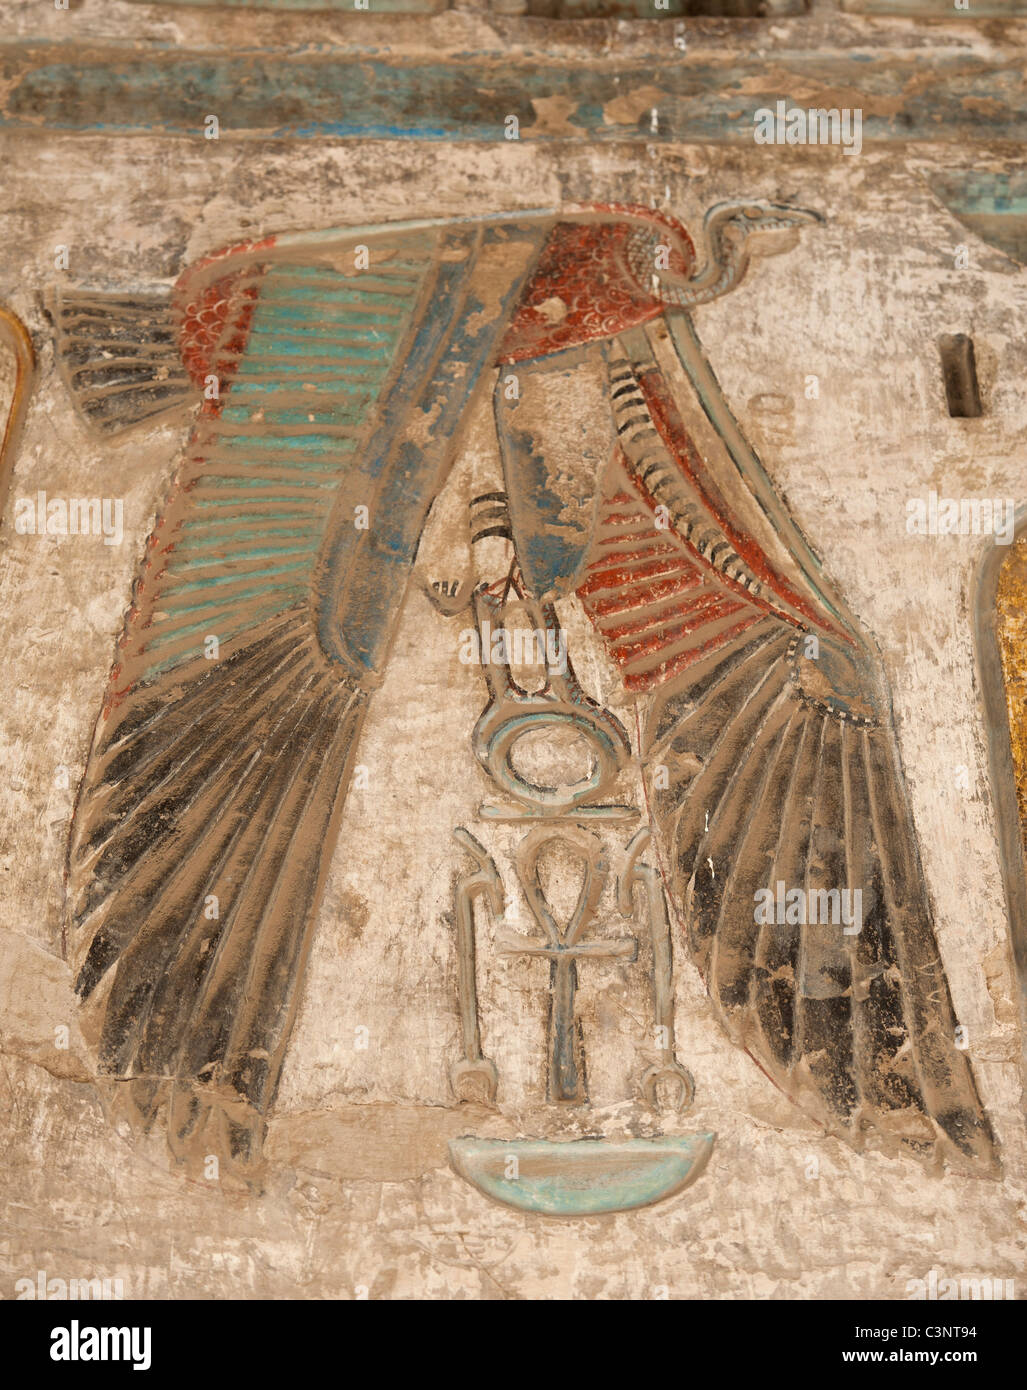 Egyptian hieroglyphic carvings on a wall at the temple of